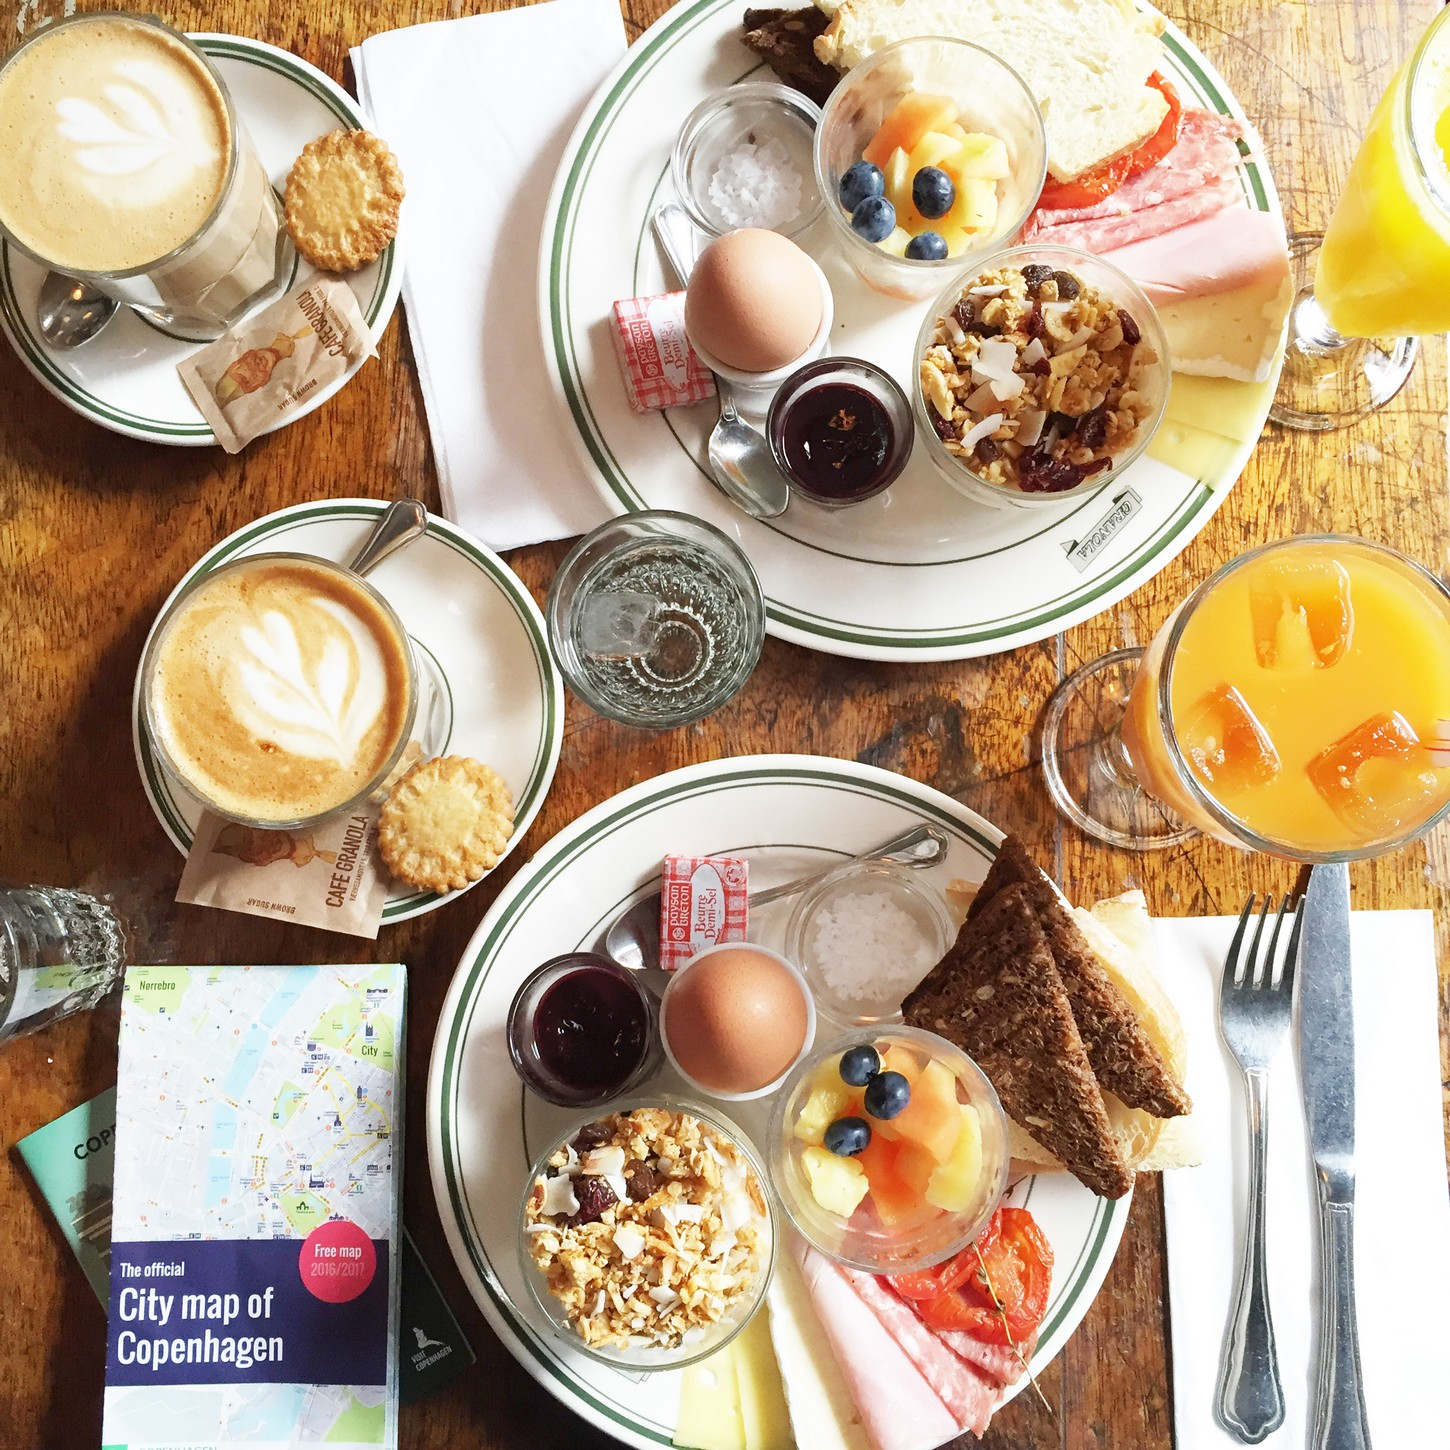 granola-copenhague-brunch-copie